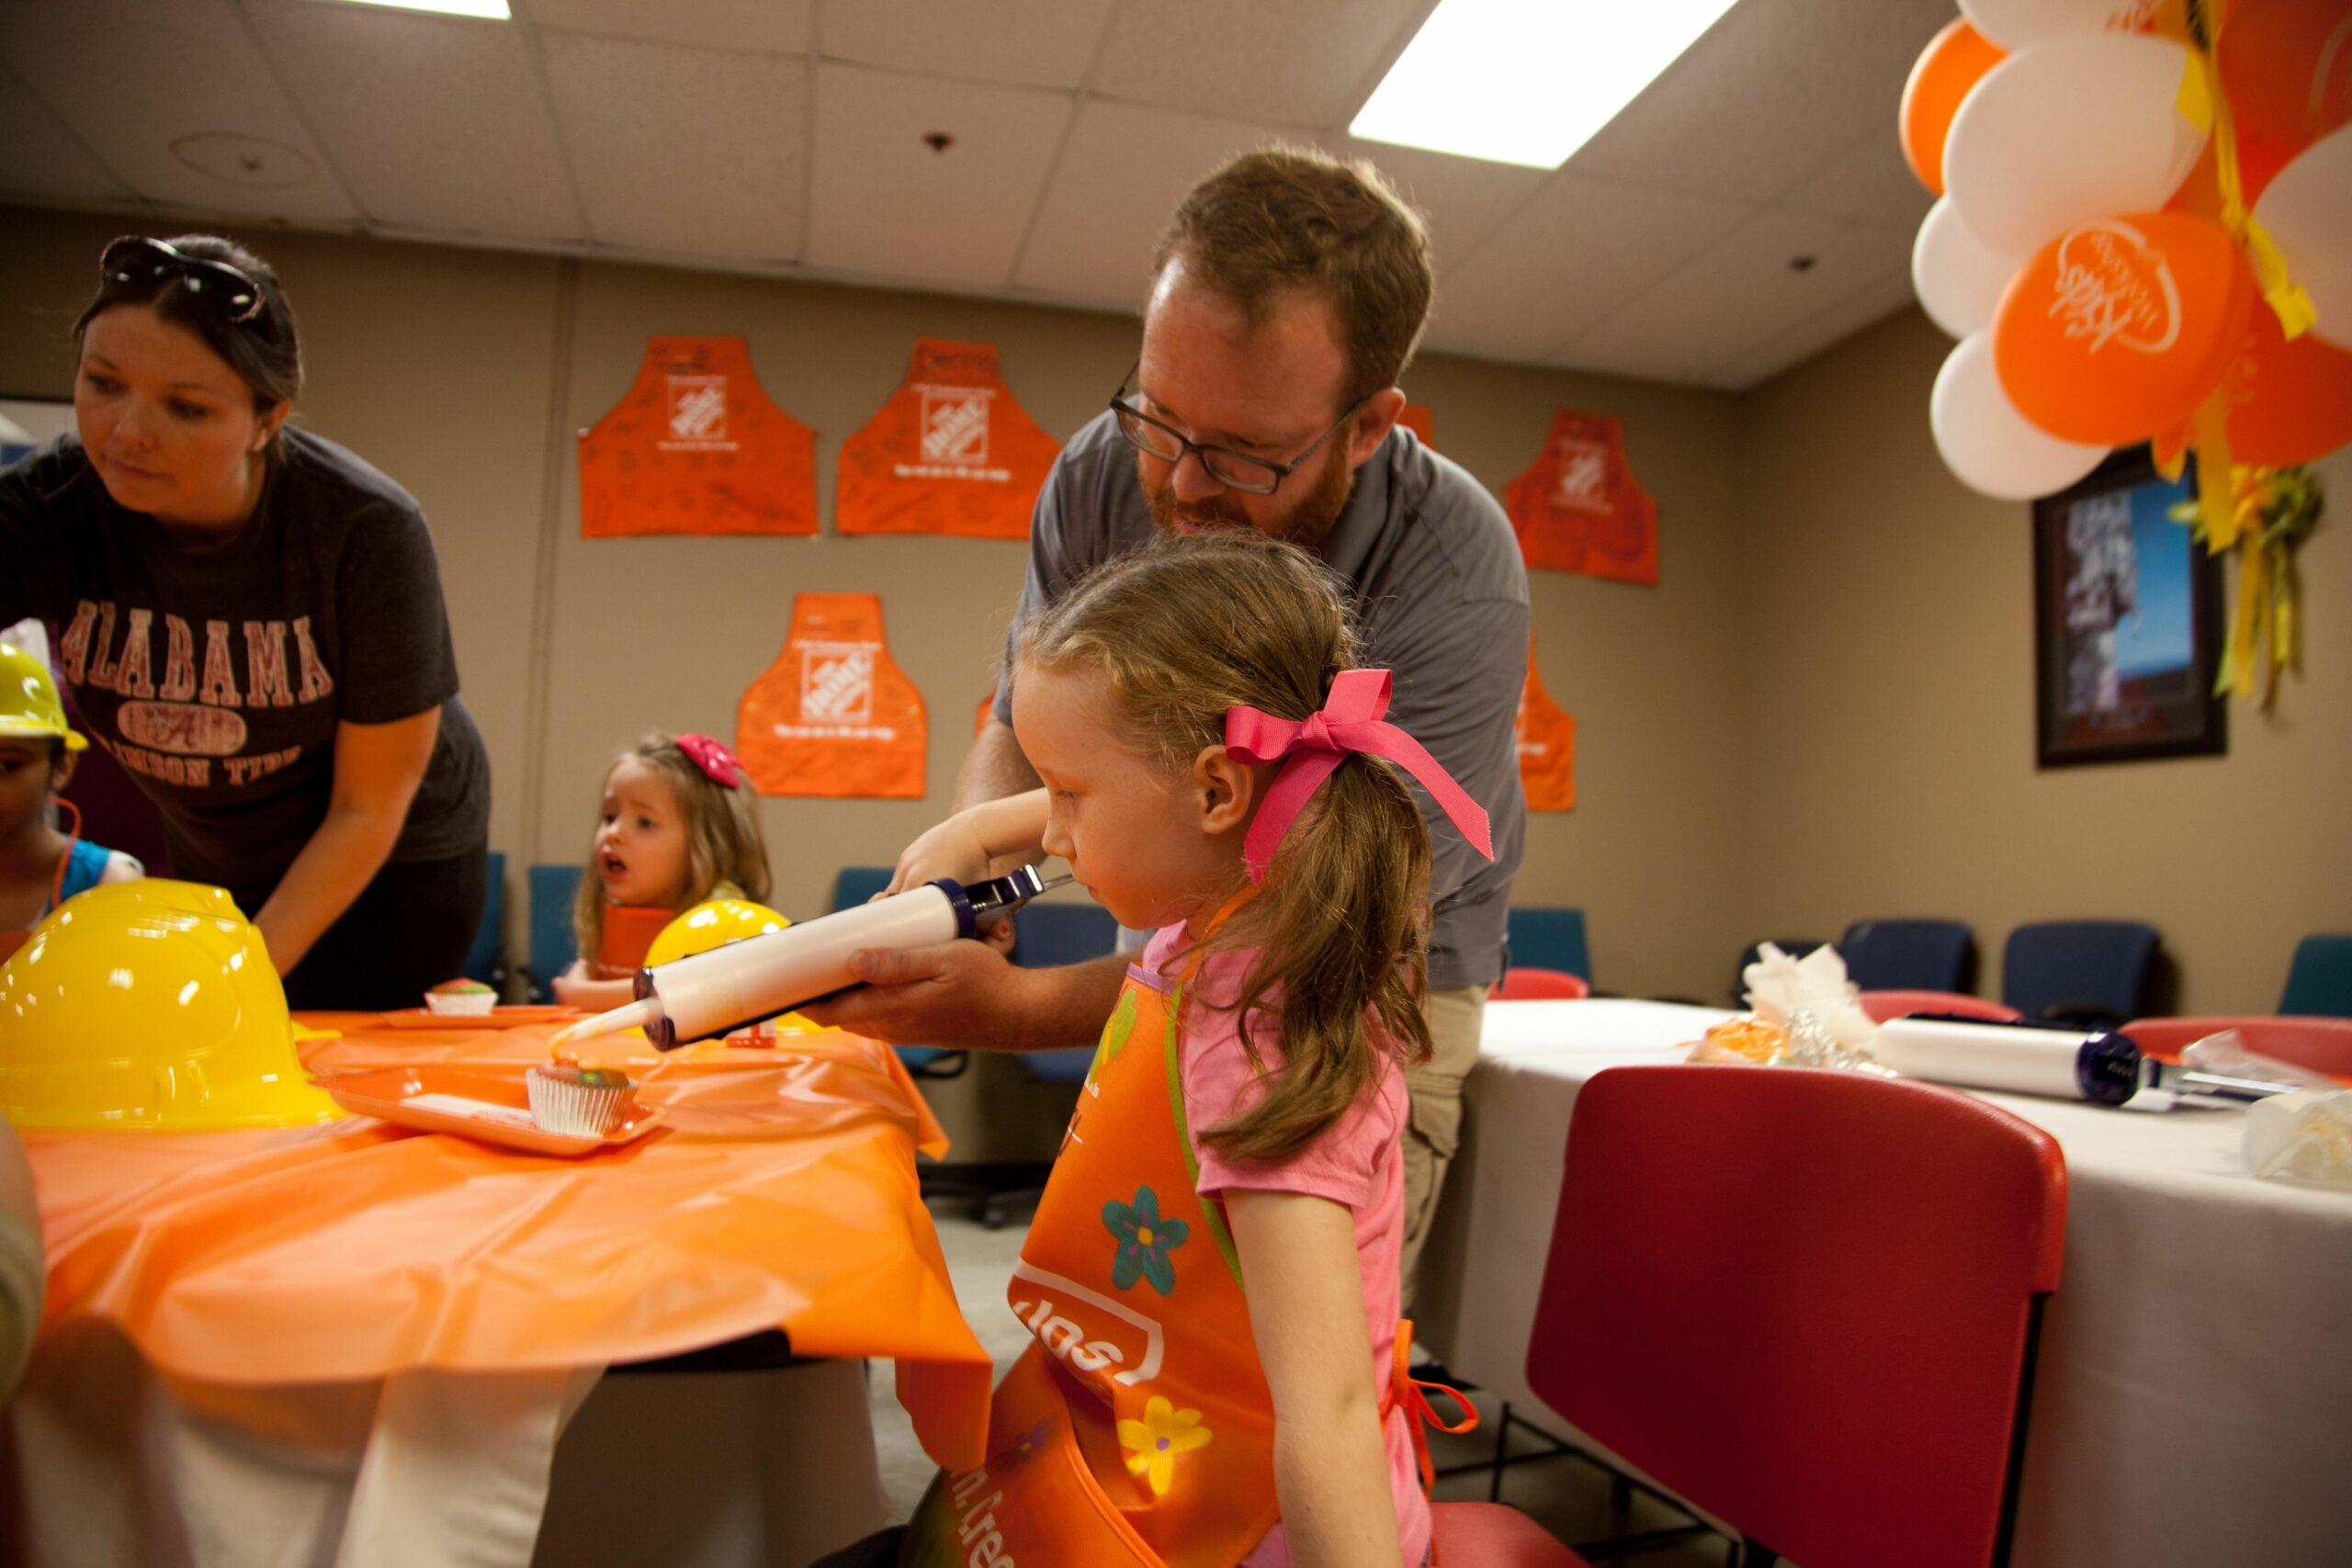 Birthday Party at Home Depot - Dad Is Learning - diy room decor home depot